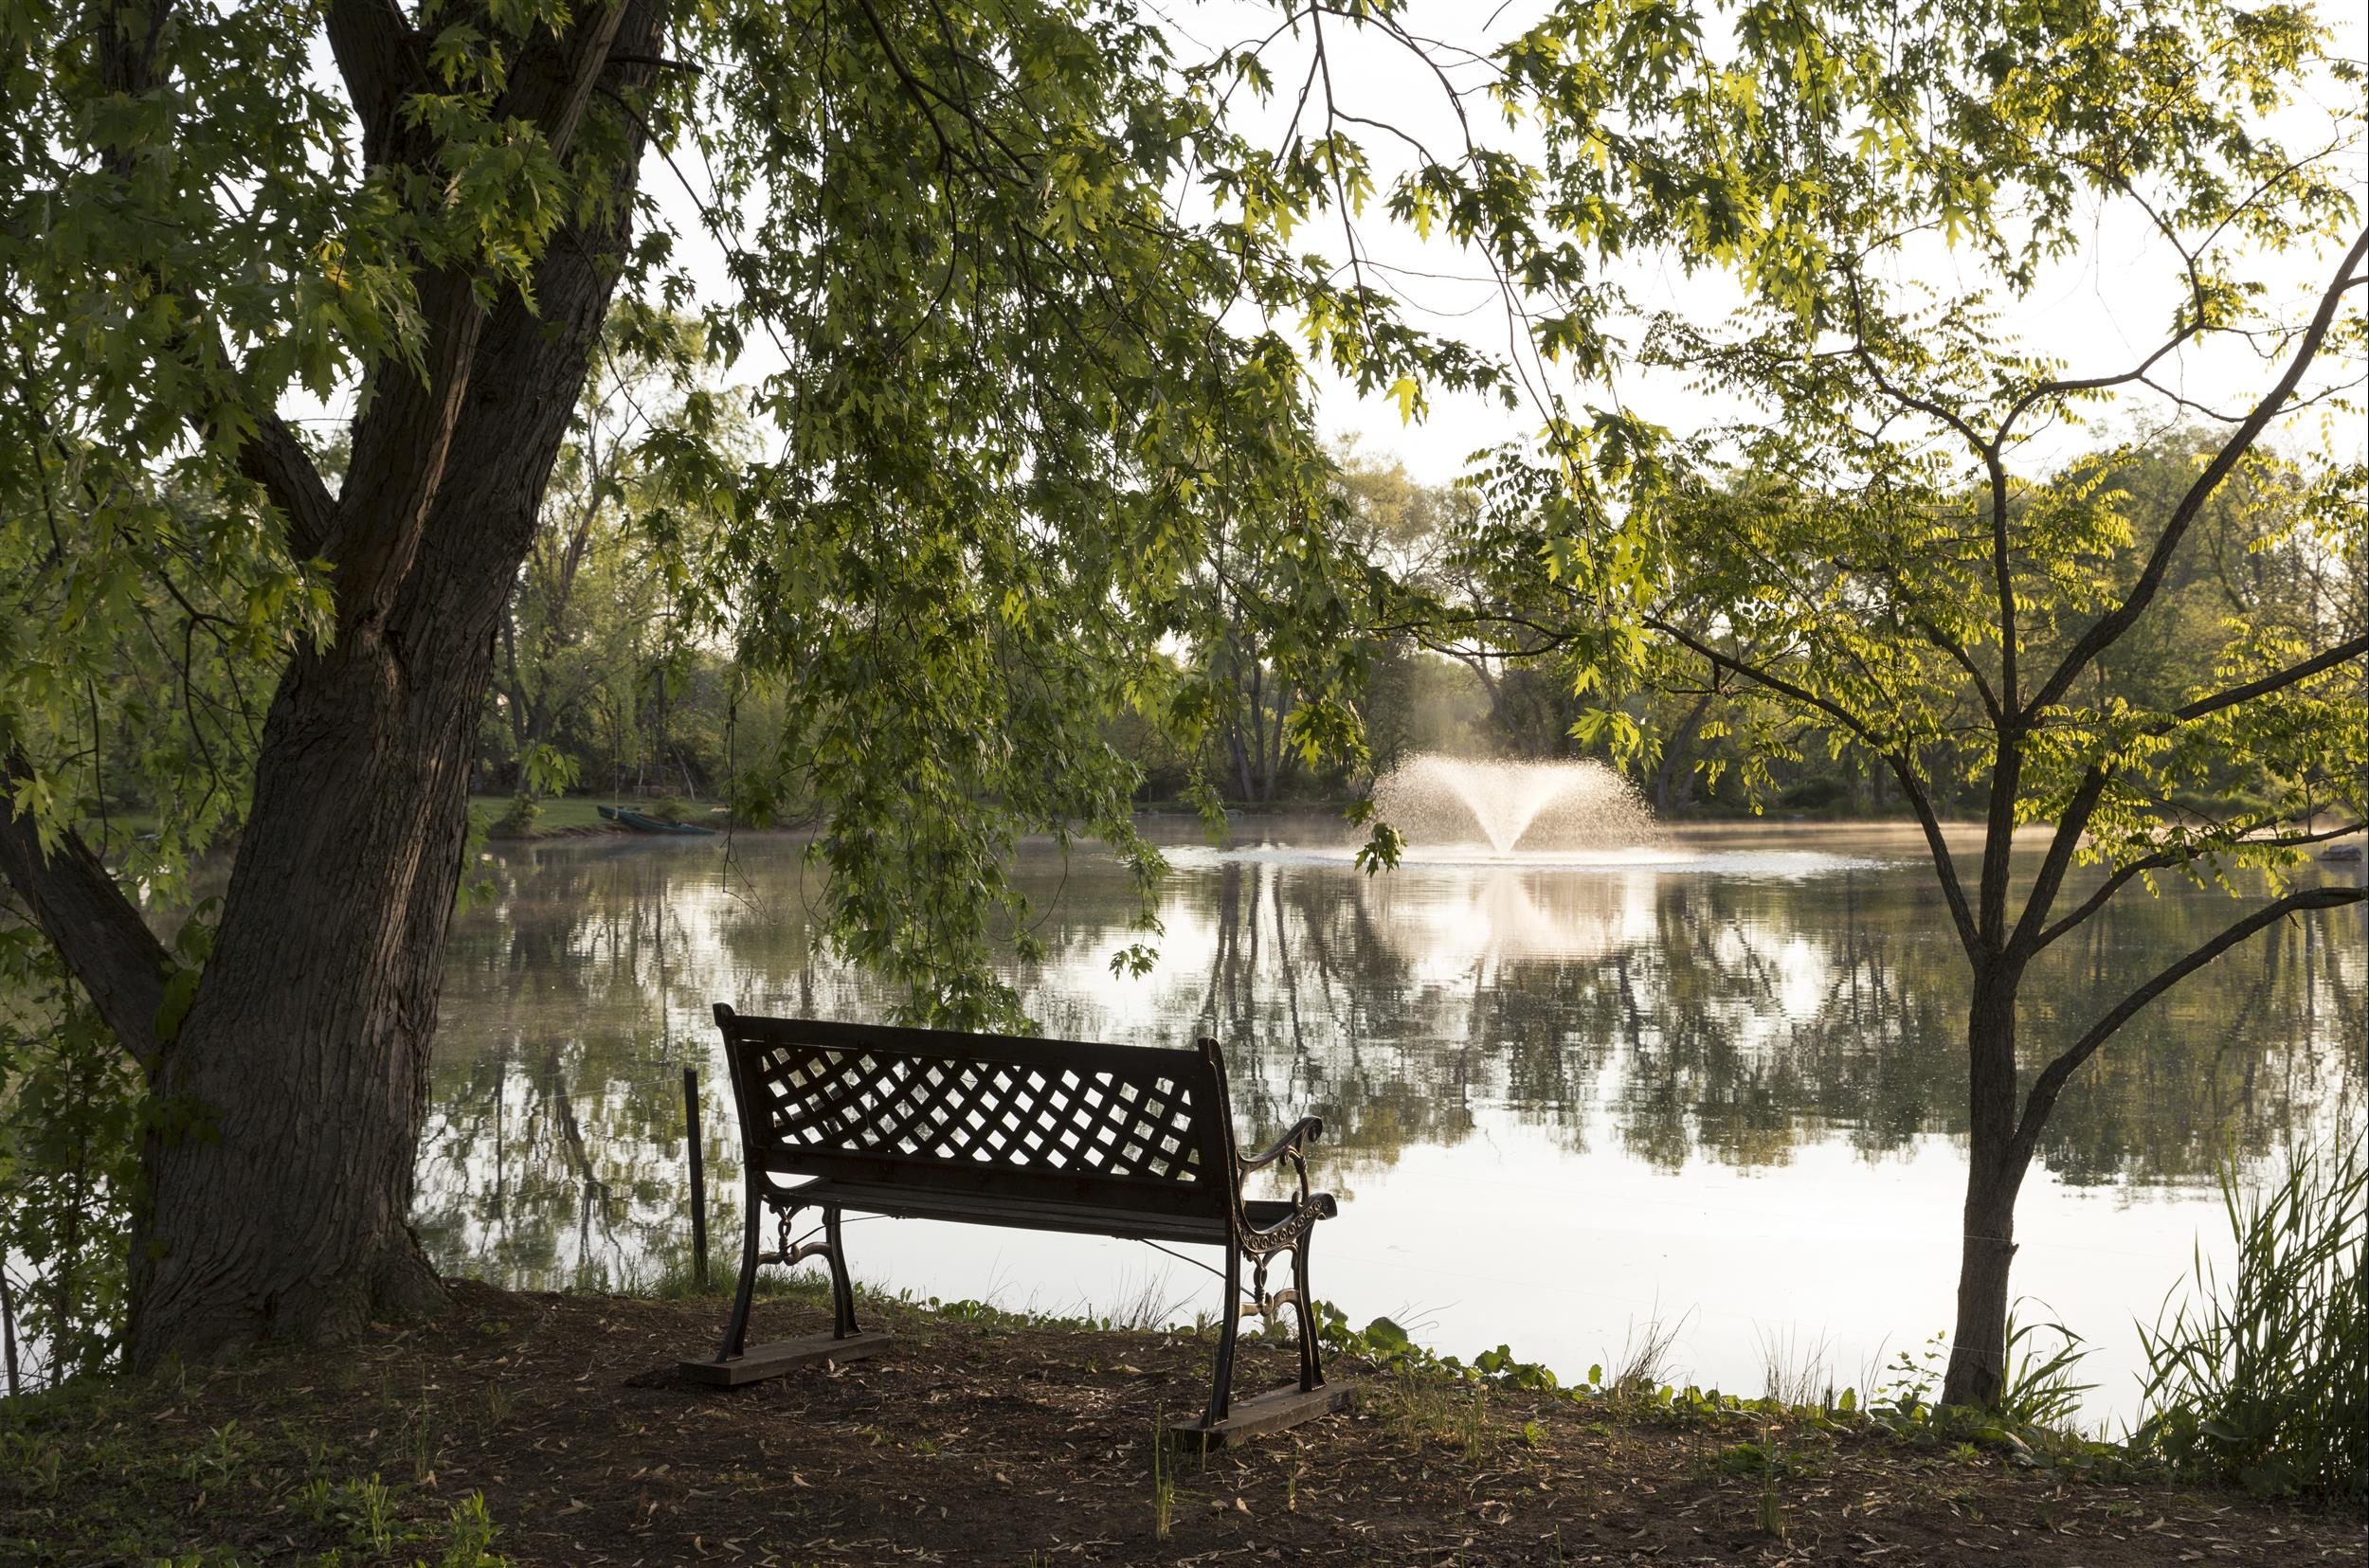 shaded-bench-overlooking-lake.jpg